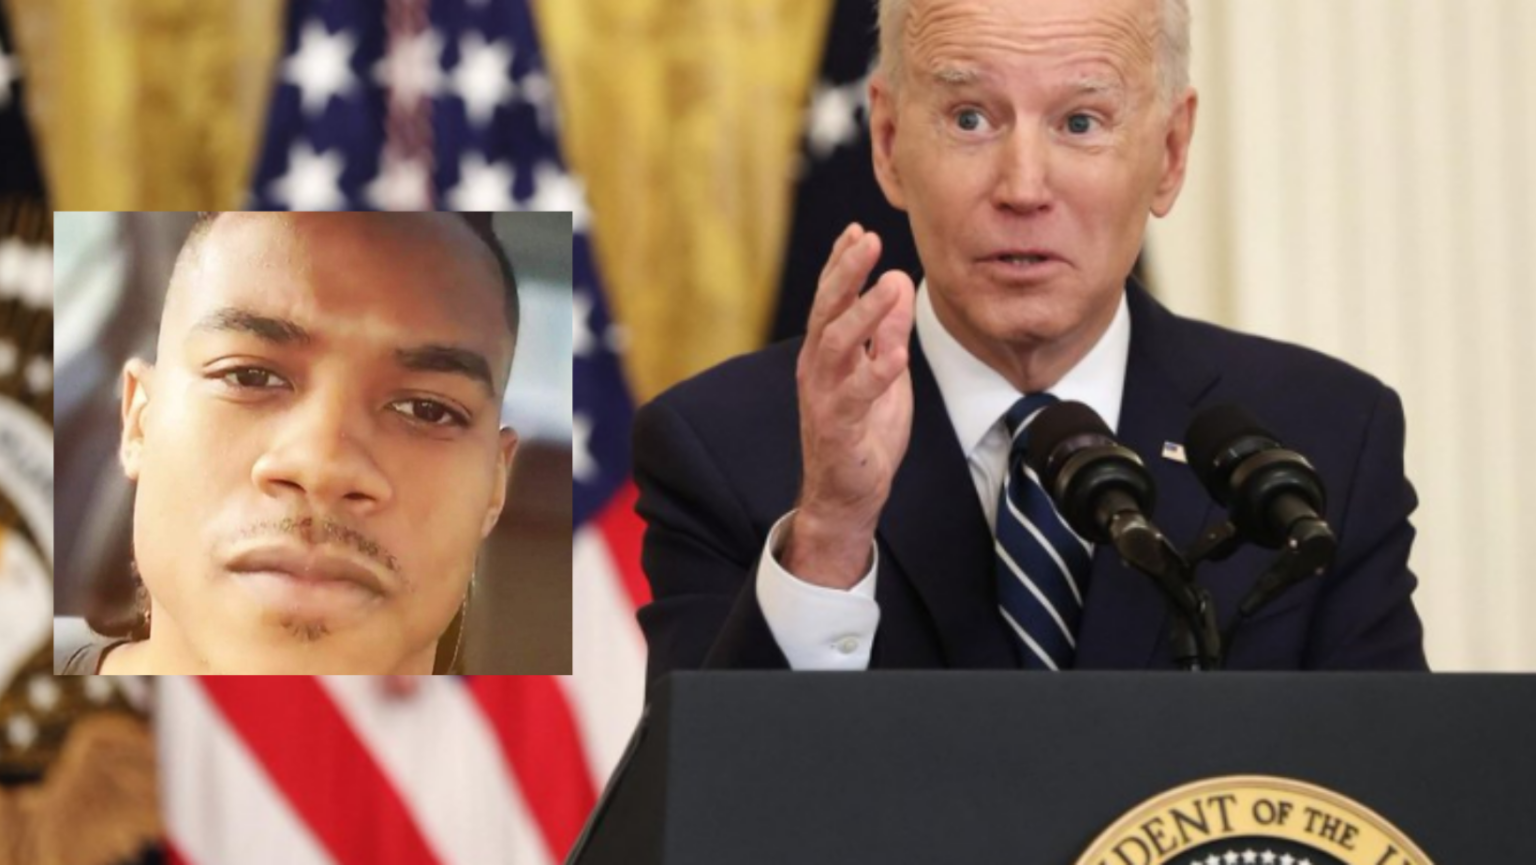 After Capitol attack, Biden's speech fails to condemn the actions of the black nationalist who killed a cop